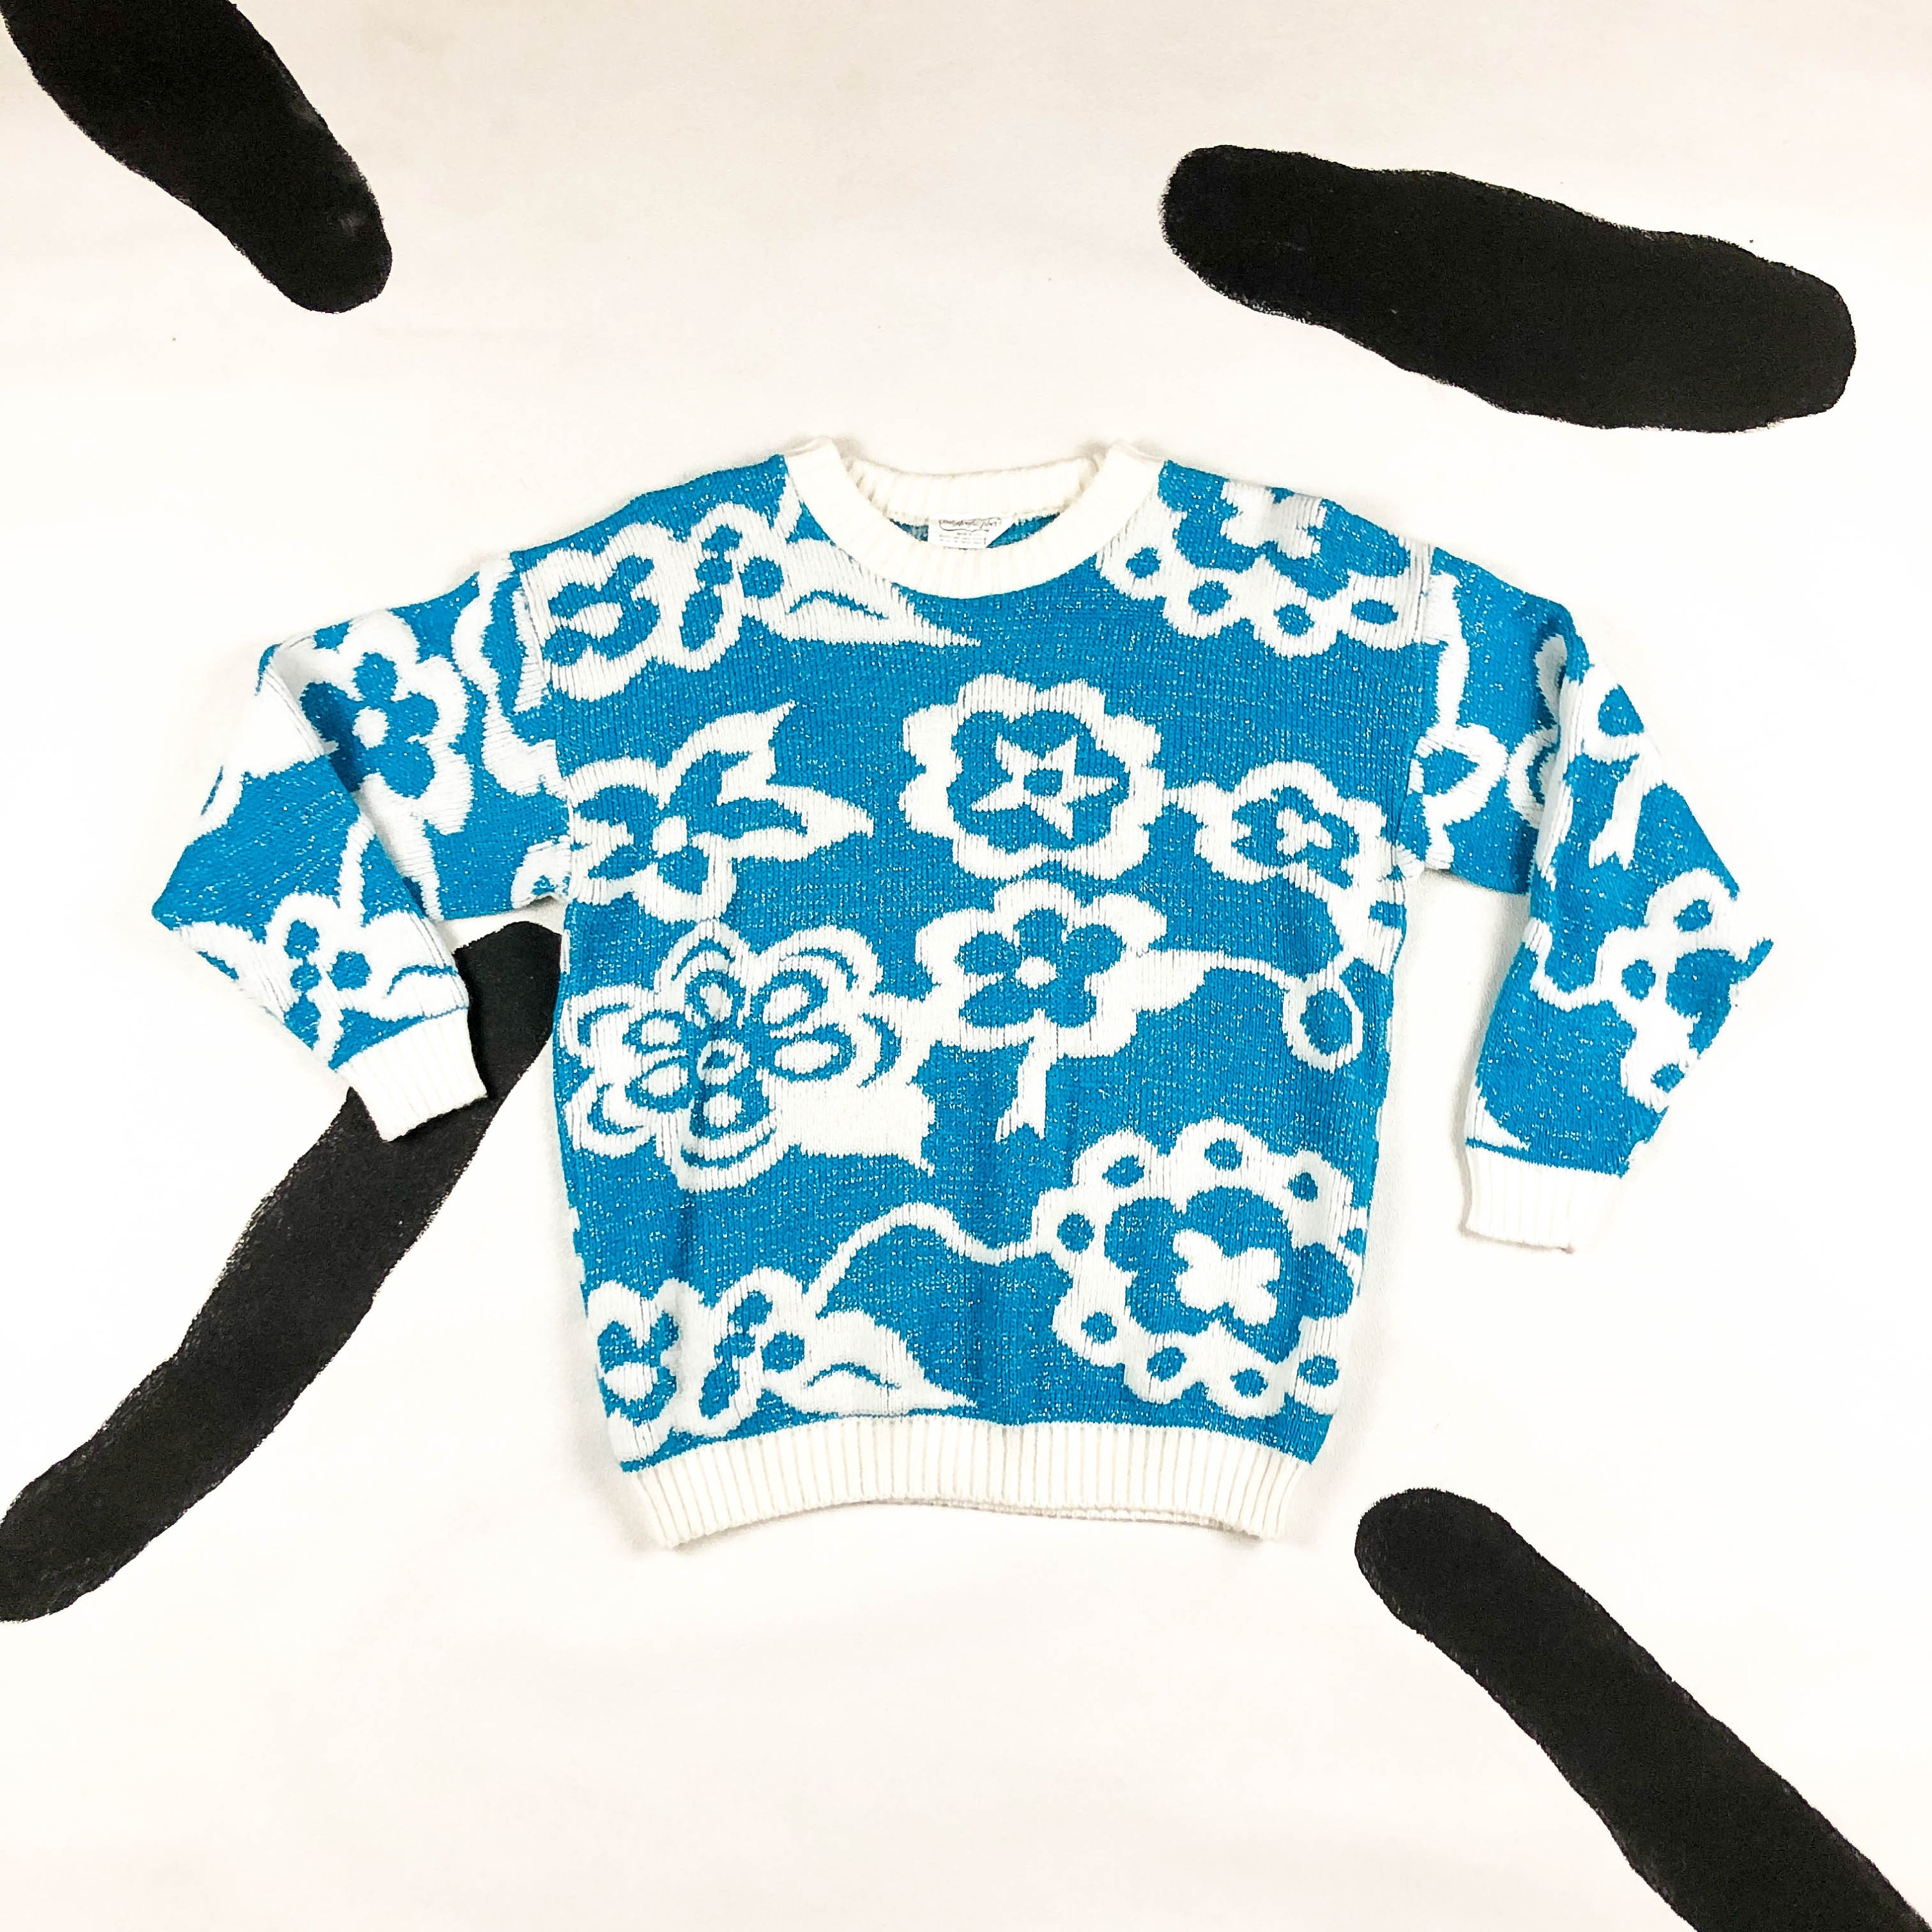 80s Sweatshirts, Sweaters, Vests | Women 1980S Lurex Floral Knit SweaterFlowers Blue  White Babysitters Club Medium Glitter Large Kawaii Saved By The Bell M $48.00 AT vintagedancer.com